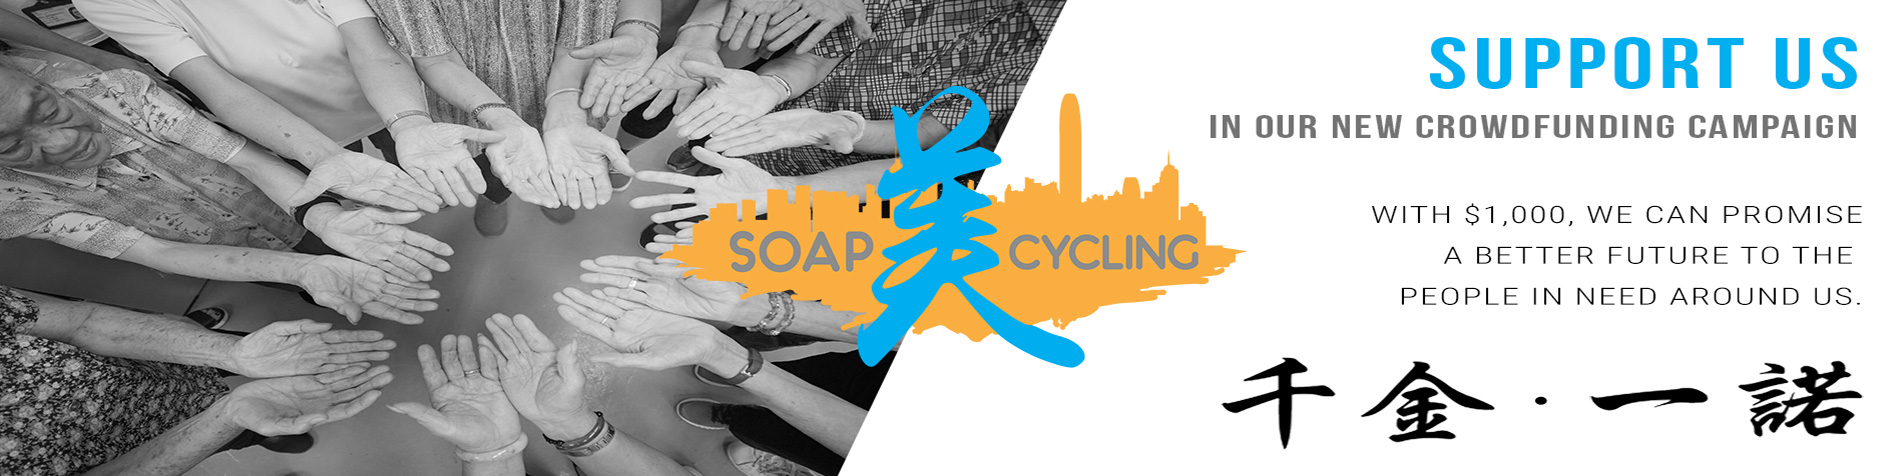 Soap Cycling - Help Launch the MEY (美) Program